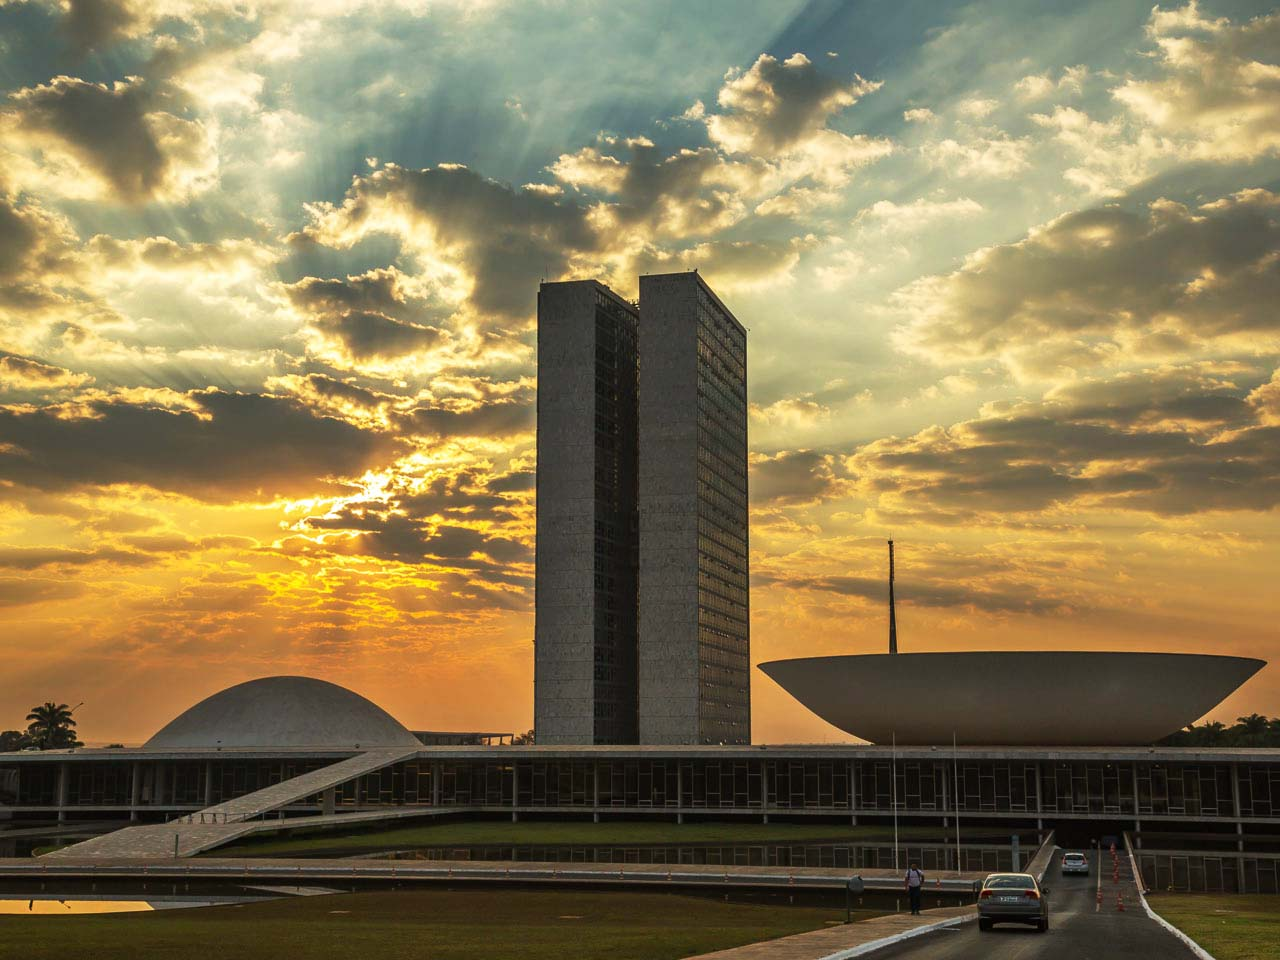 Brasilia Df Distrito Federal - As Belezas Das Obras De Oscar Niemeyer!